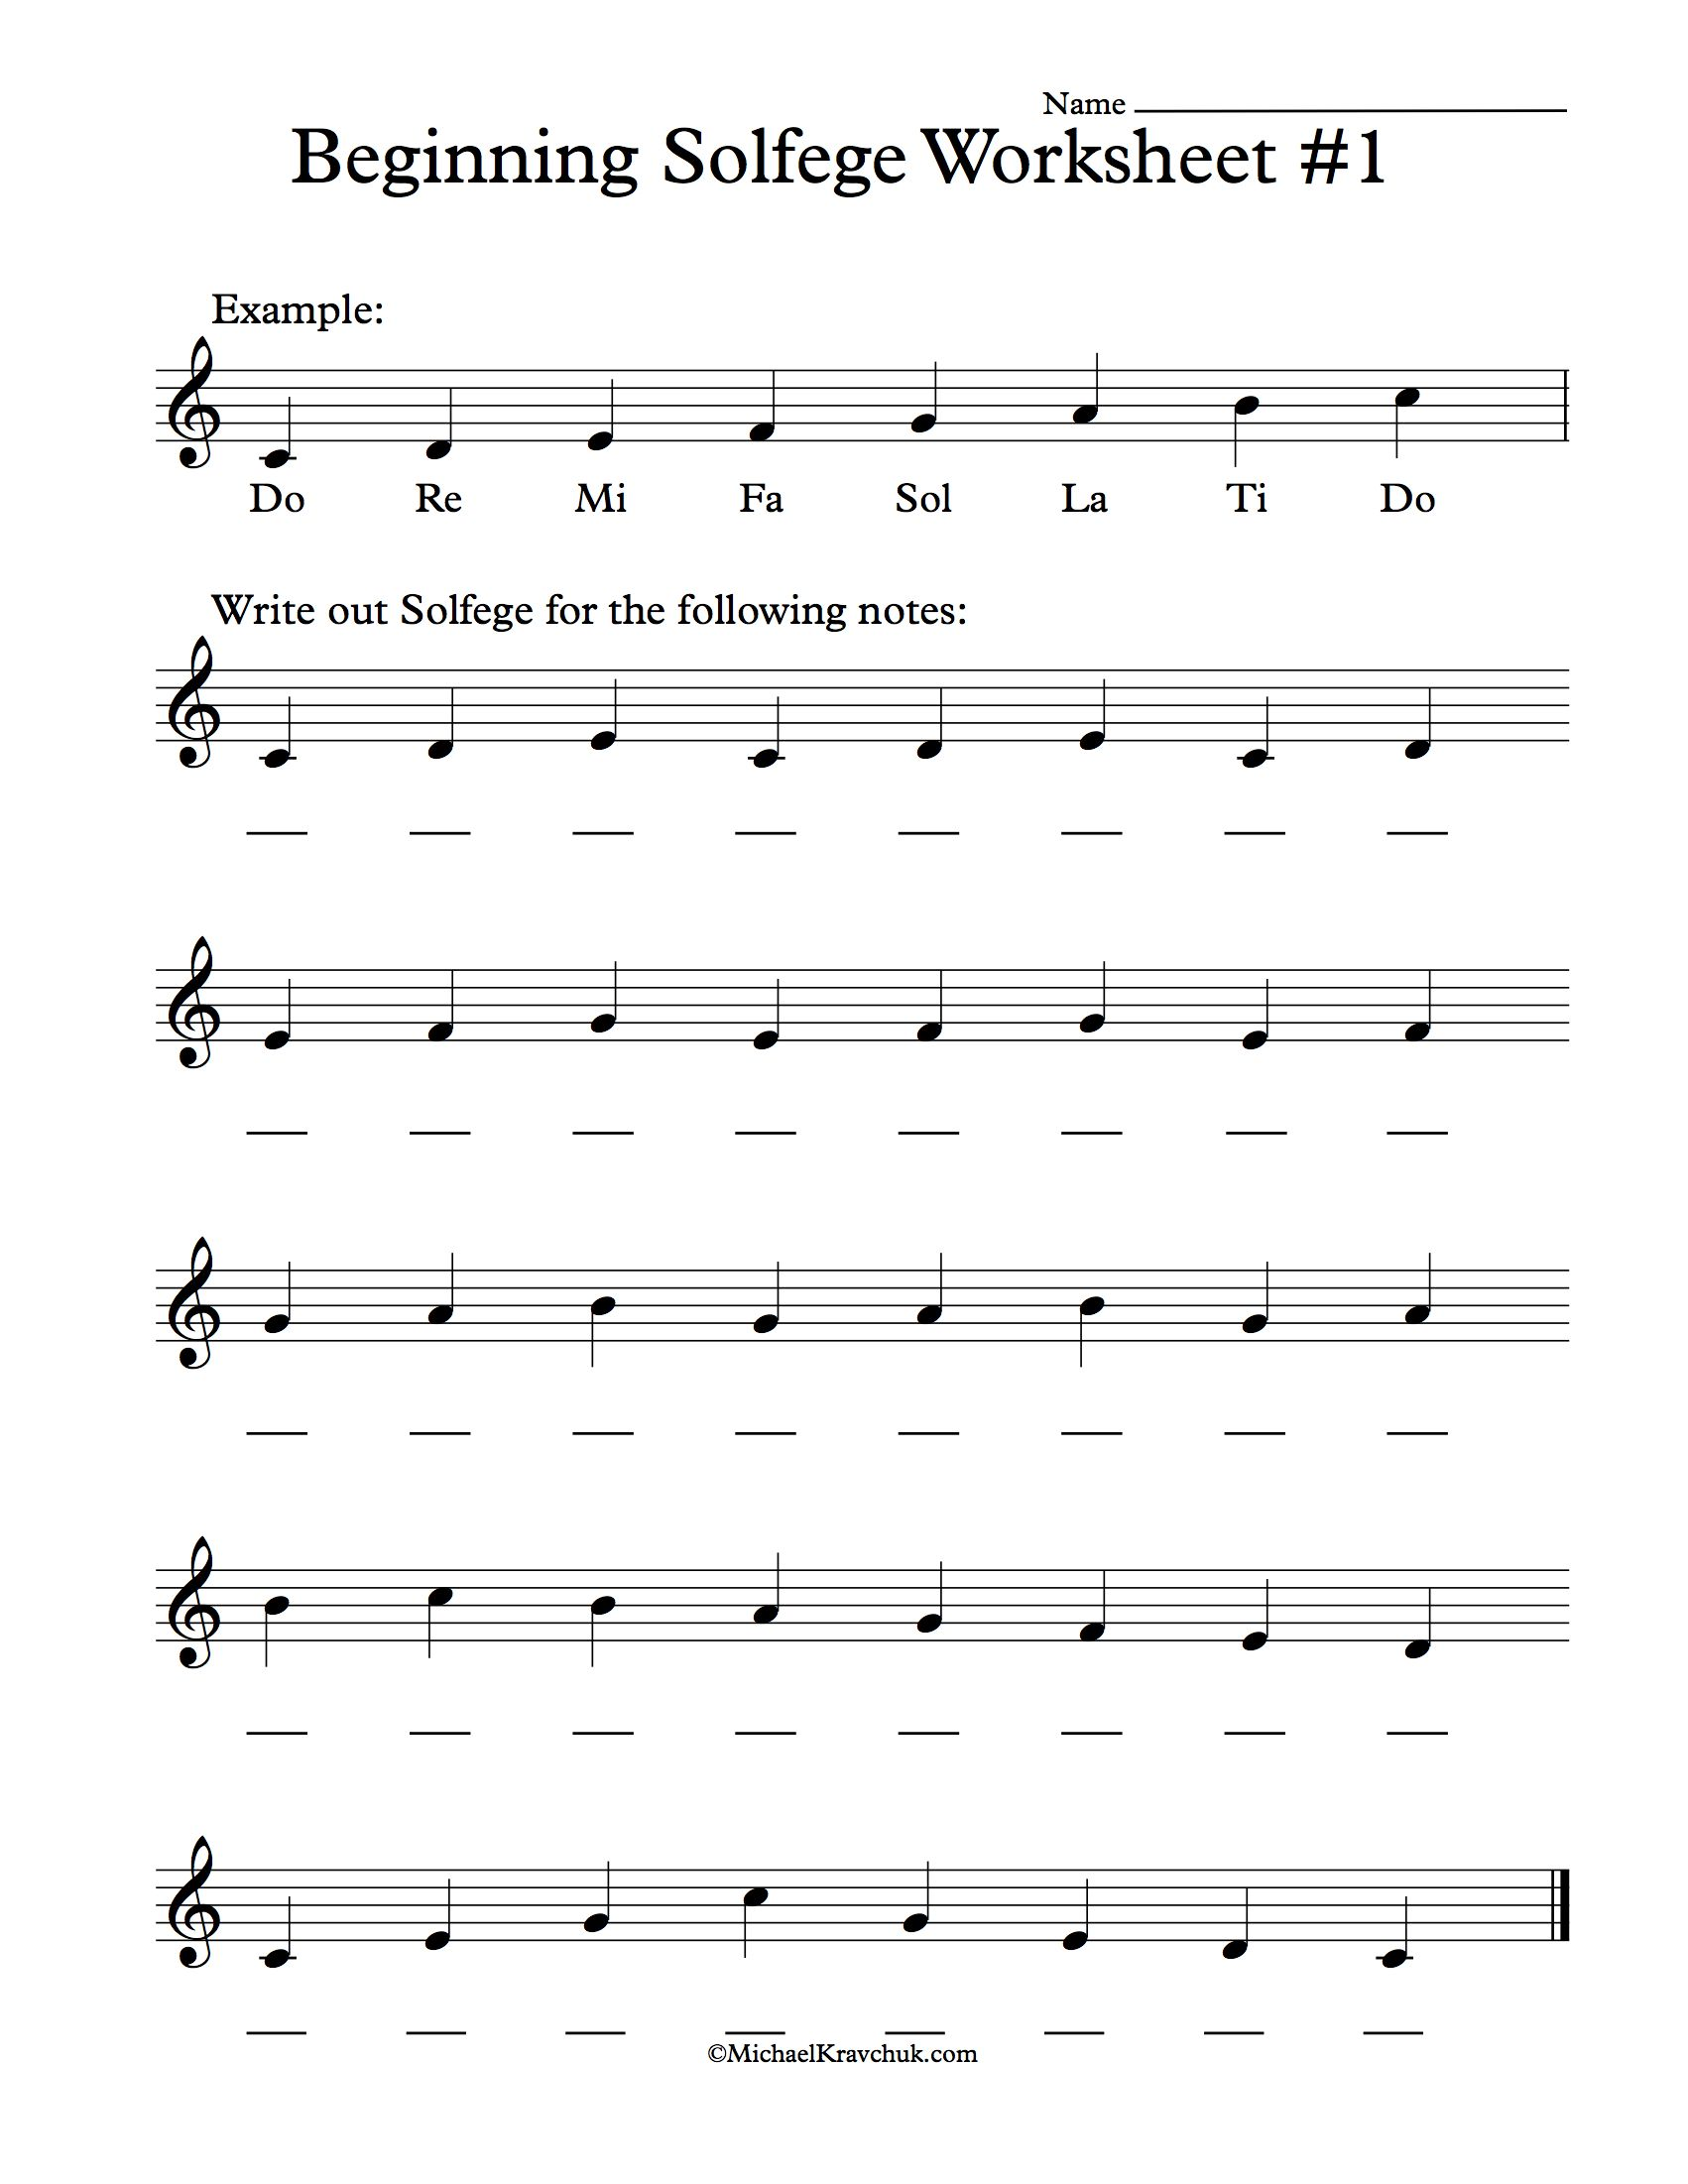 Beginning Solfege Worksheet 1 For Classroom Instructions